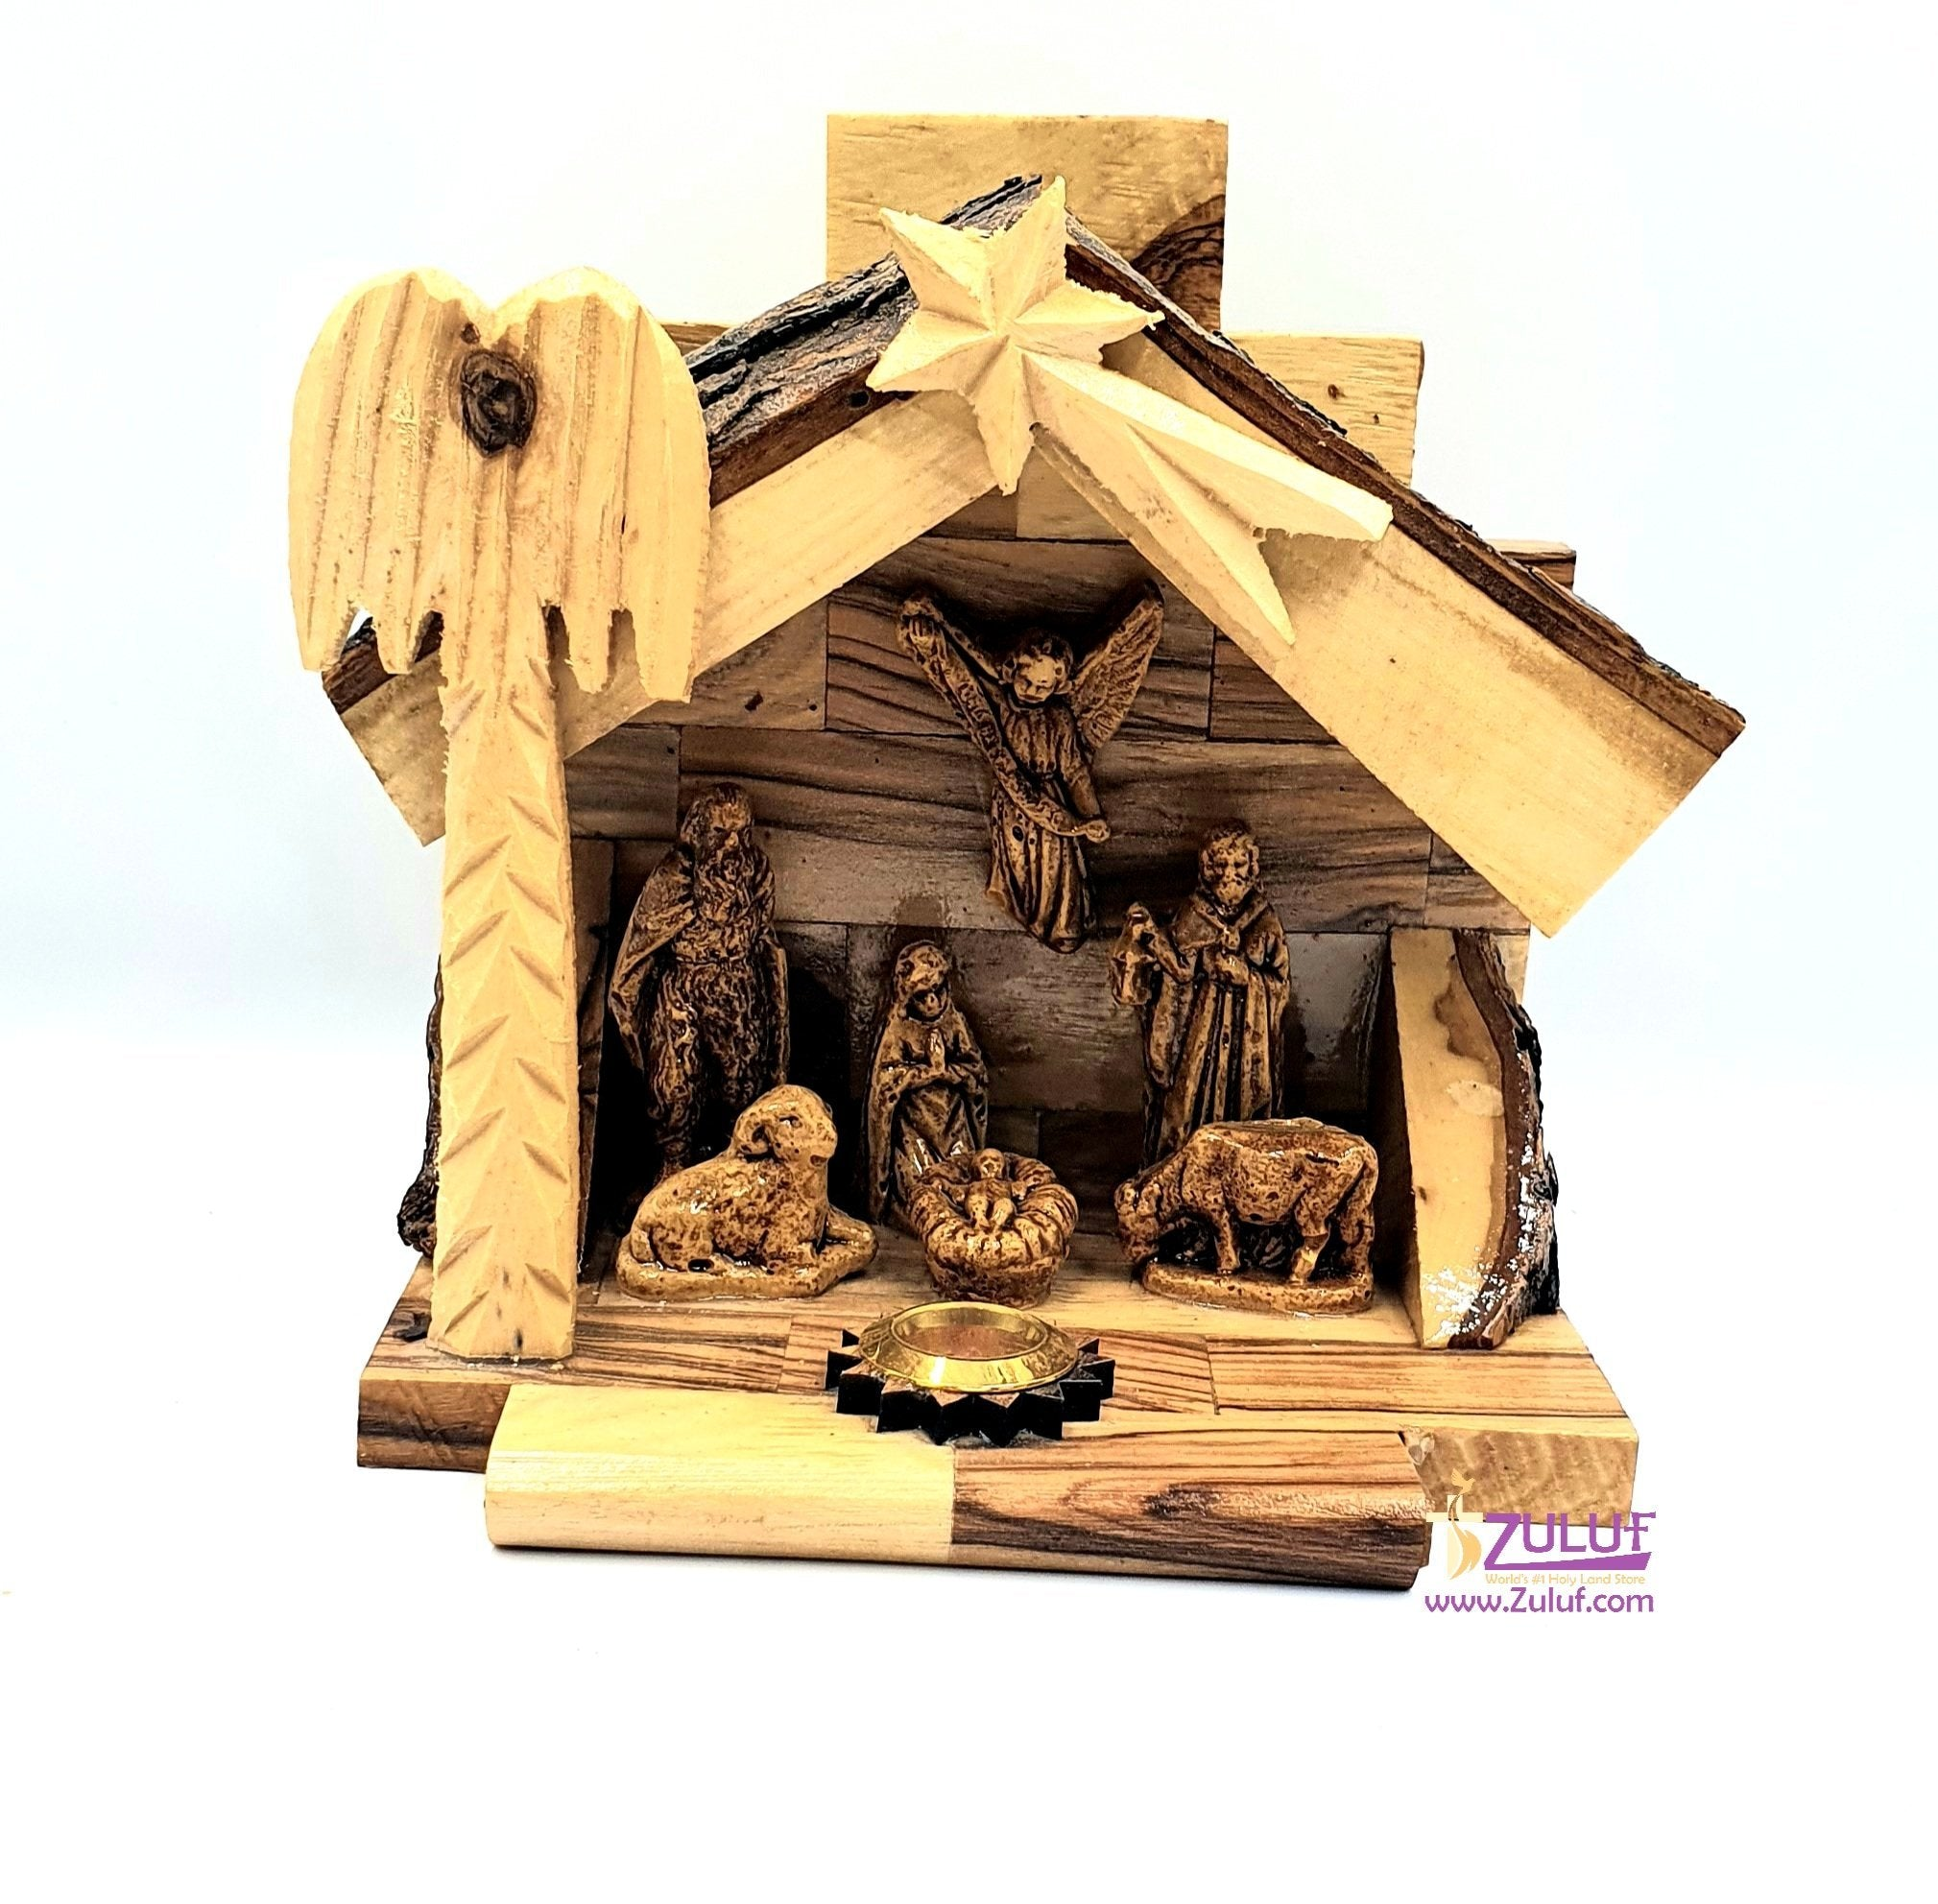 Hand Carved Nativity Set Scene With Bark Roof Made In Bethlehem by Zuluf - NAT022 - Zuluf